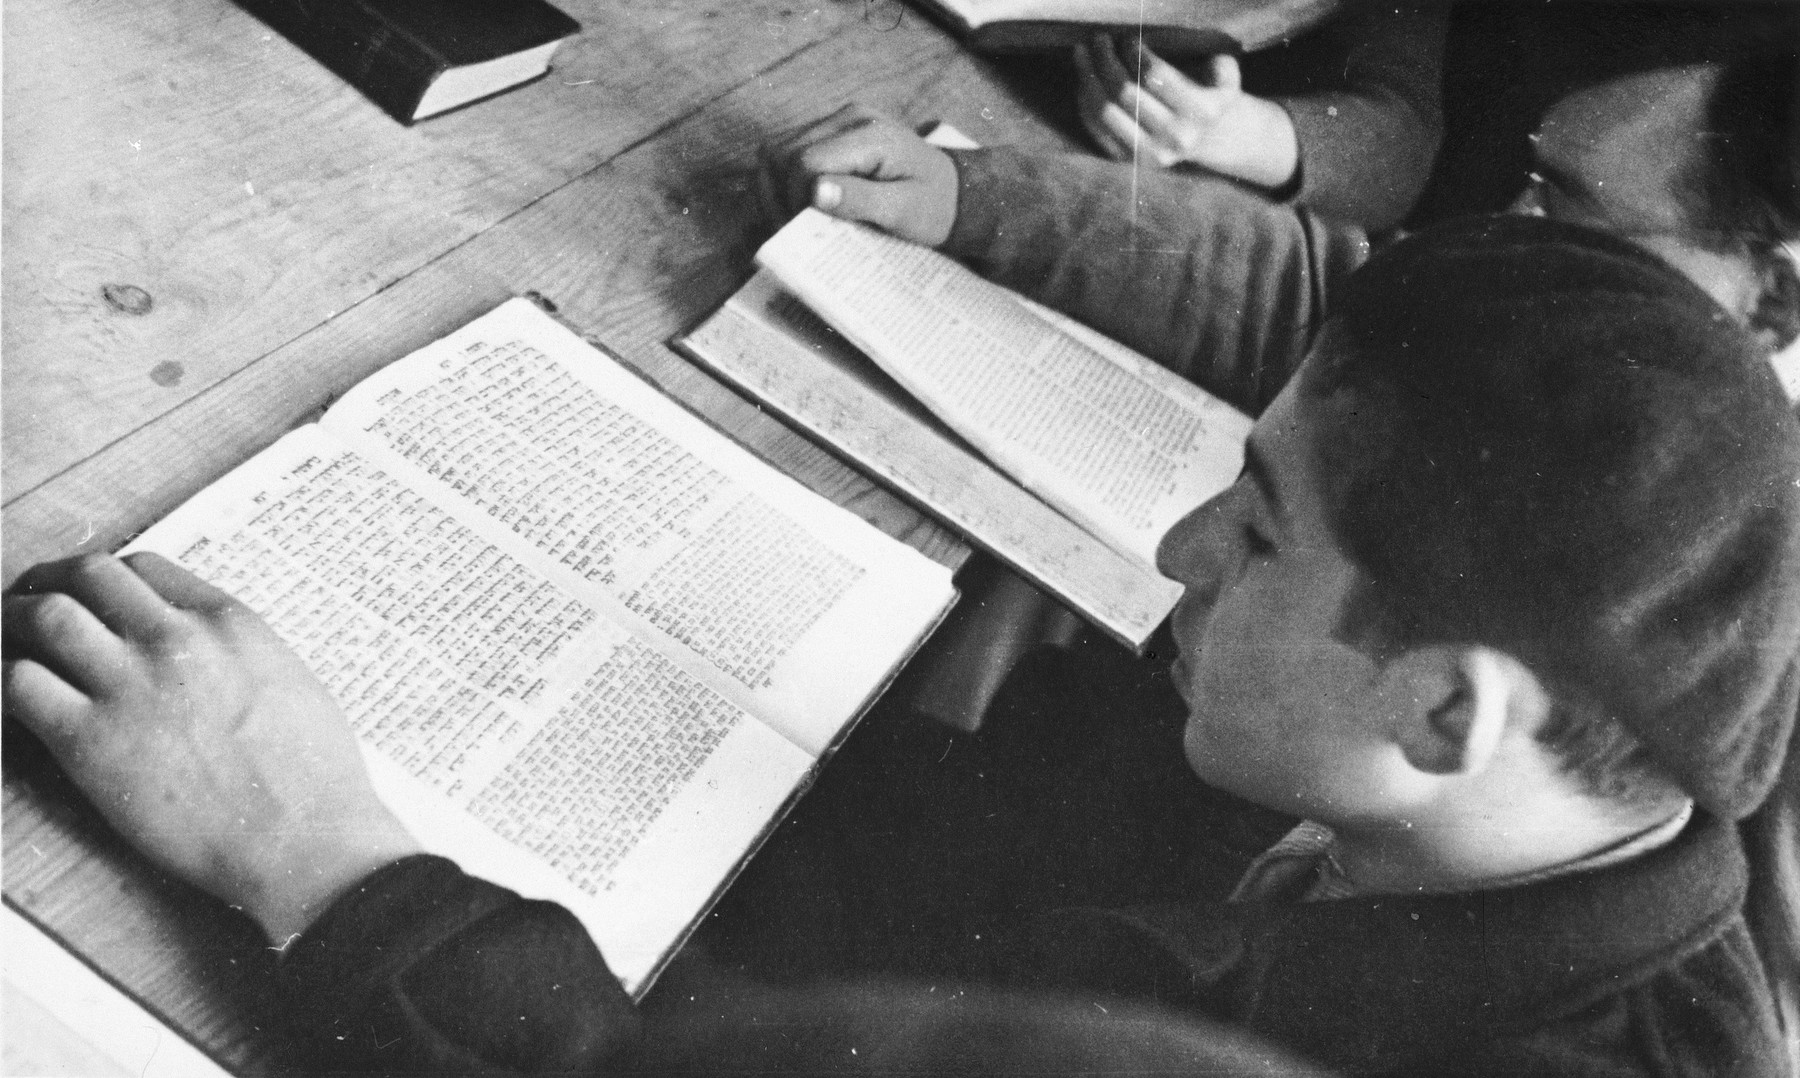 Jewish DP youth who numbered among the Buchenwald children, study religious texts at an OSE (Oeuvre de Secours aux Enfants) children's home in France [either in Ambloy or Taverny].